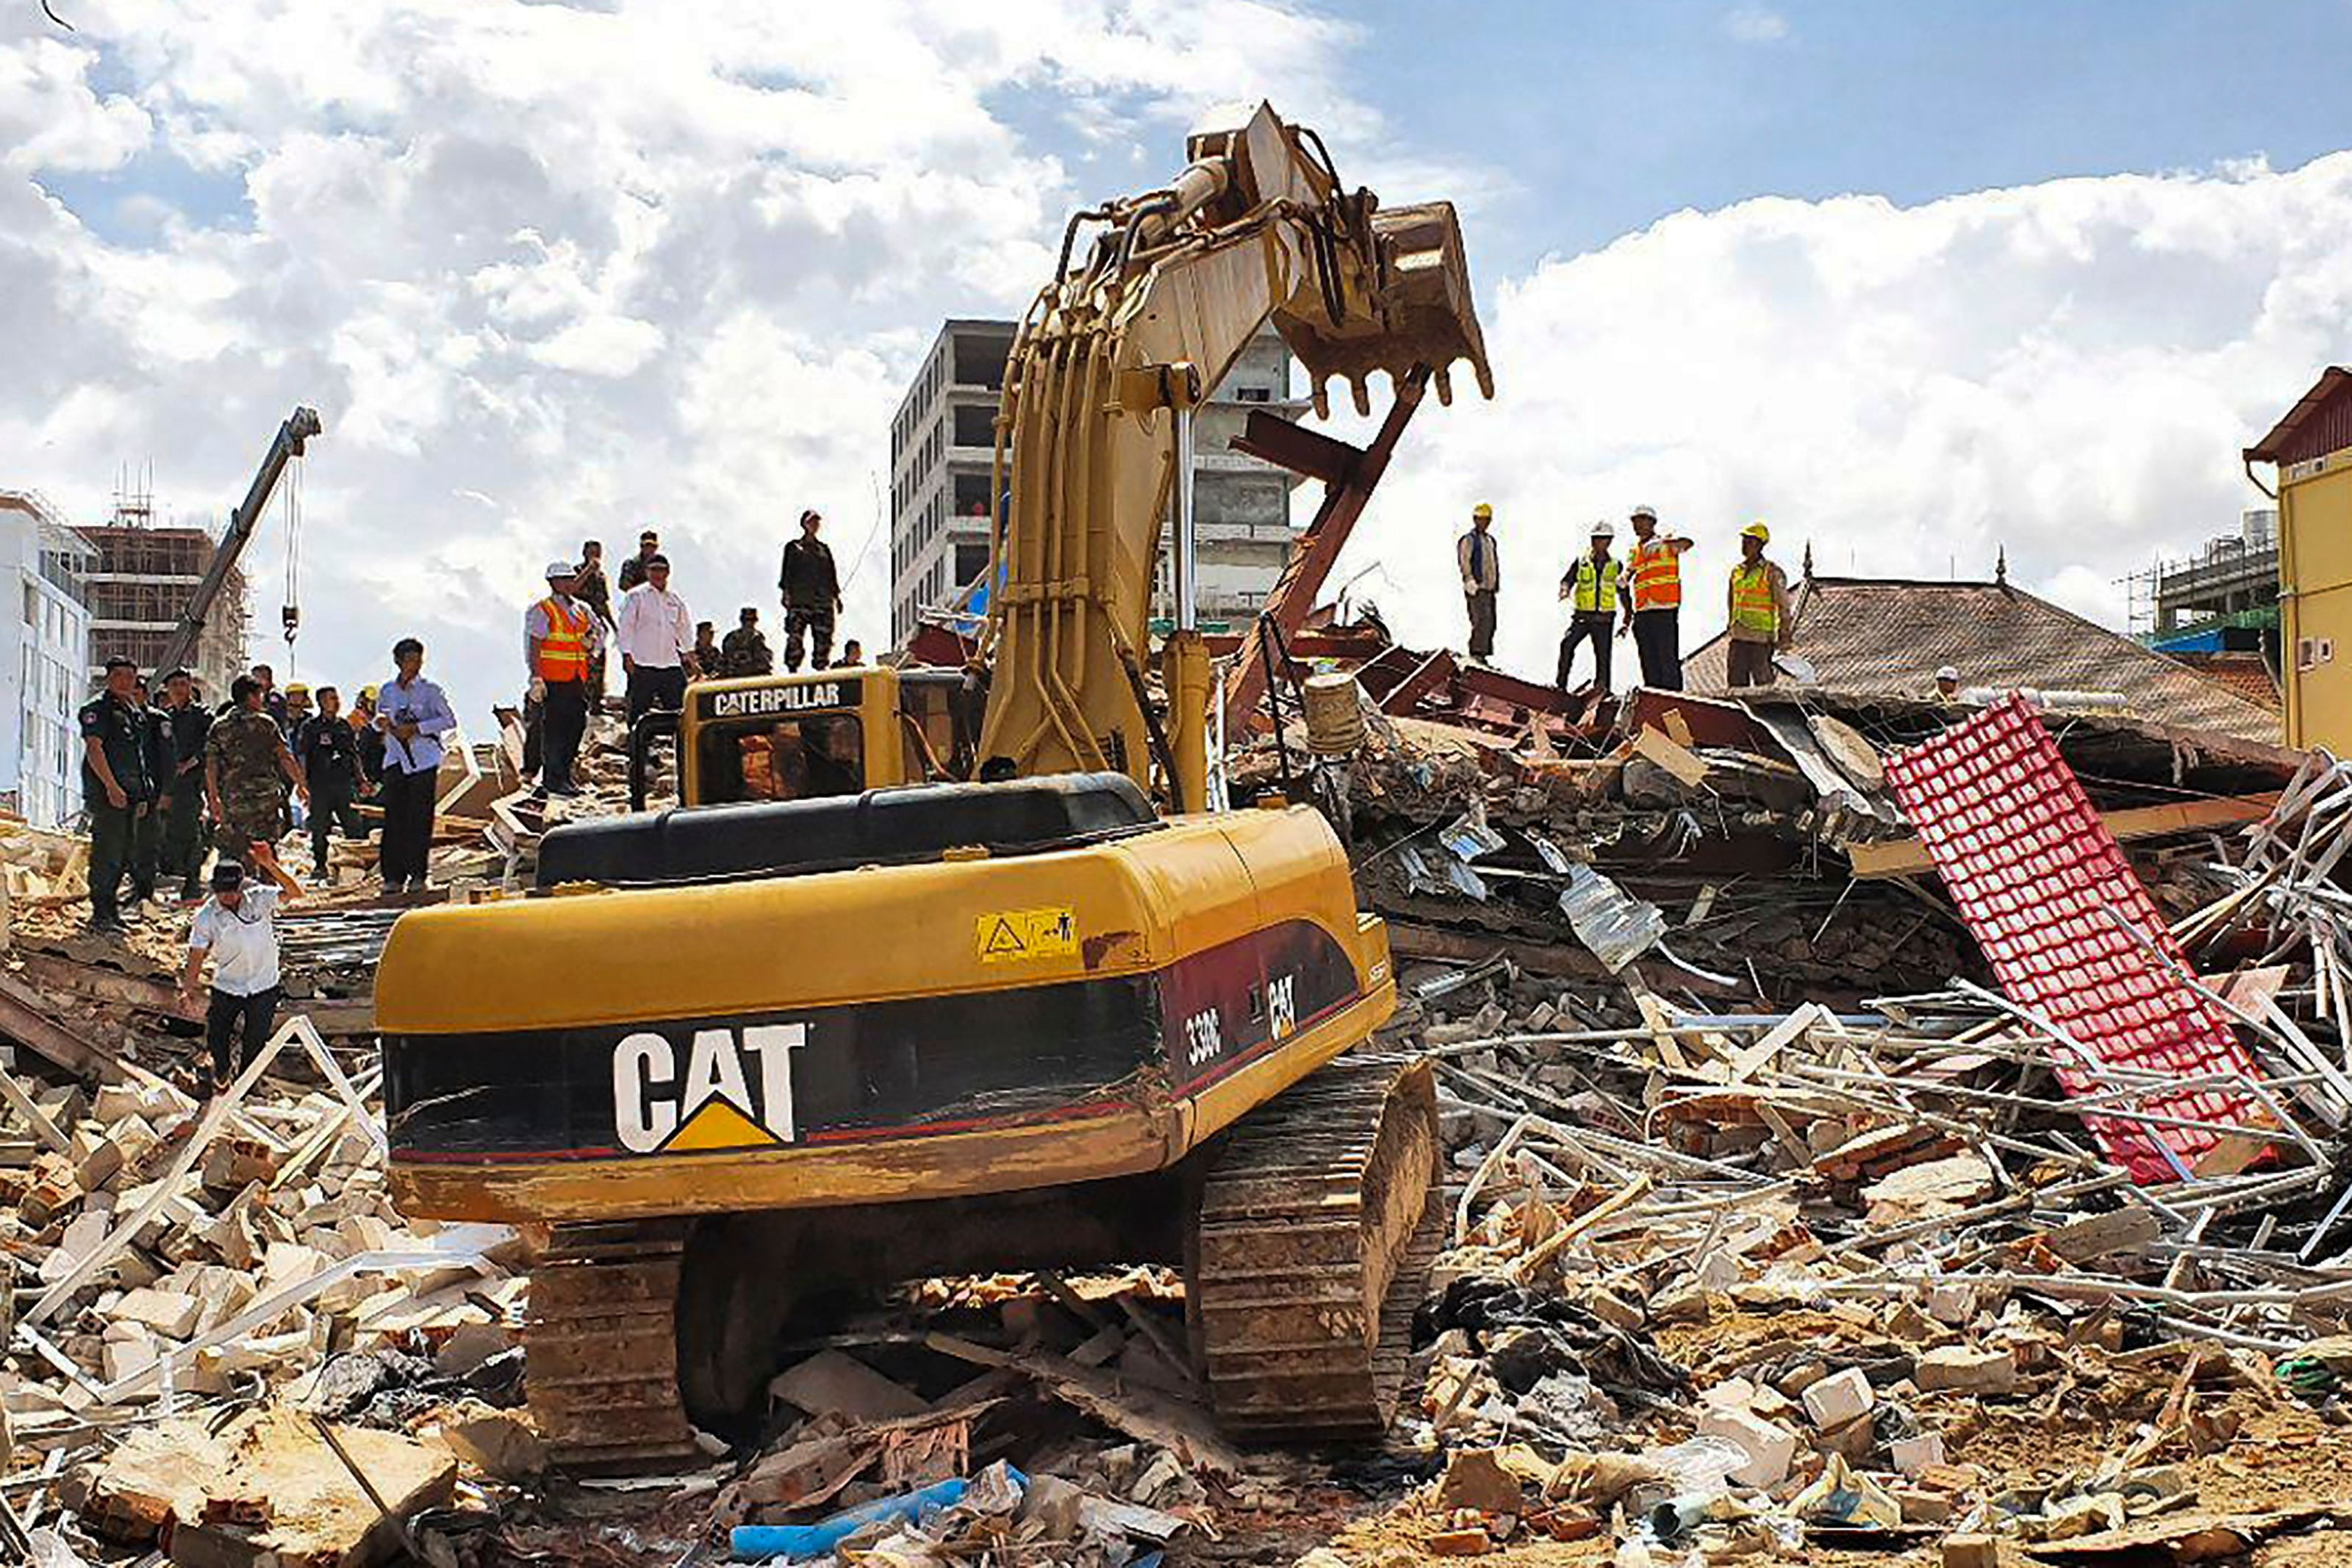 Rescue workers use an earthmover to clear debris after an under-construction building collapsed in Sihanoukville June 22, 2109. - At least three people died when an under-construction building collapsed in a Cambodian beach resort early on June 22, officials said, with fears dozens more may be buried in the rubble. (Photo by LY LAY/AFP/Getty Images)